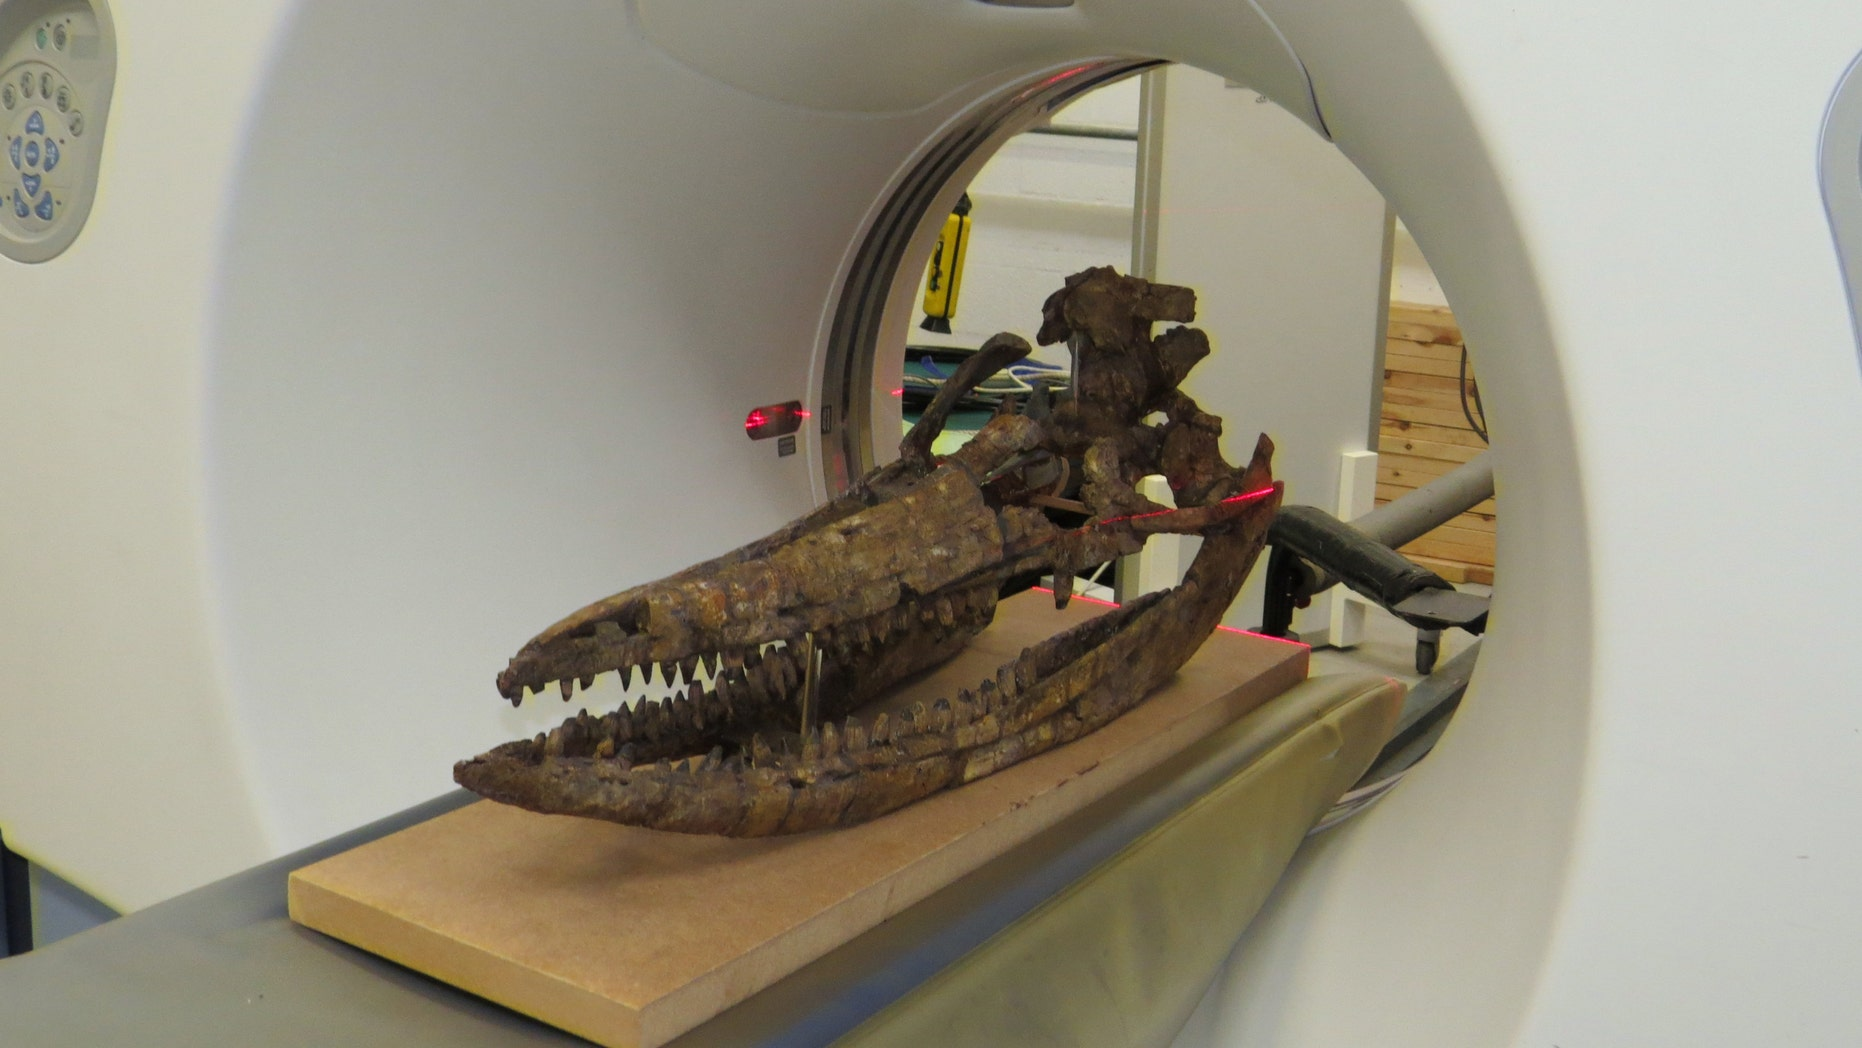 CT scanning of the skull